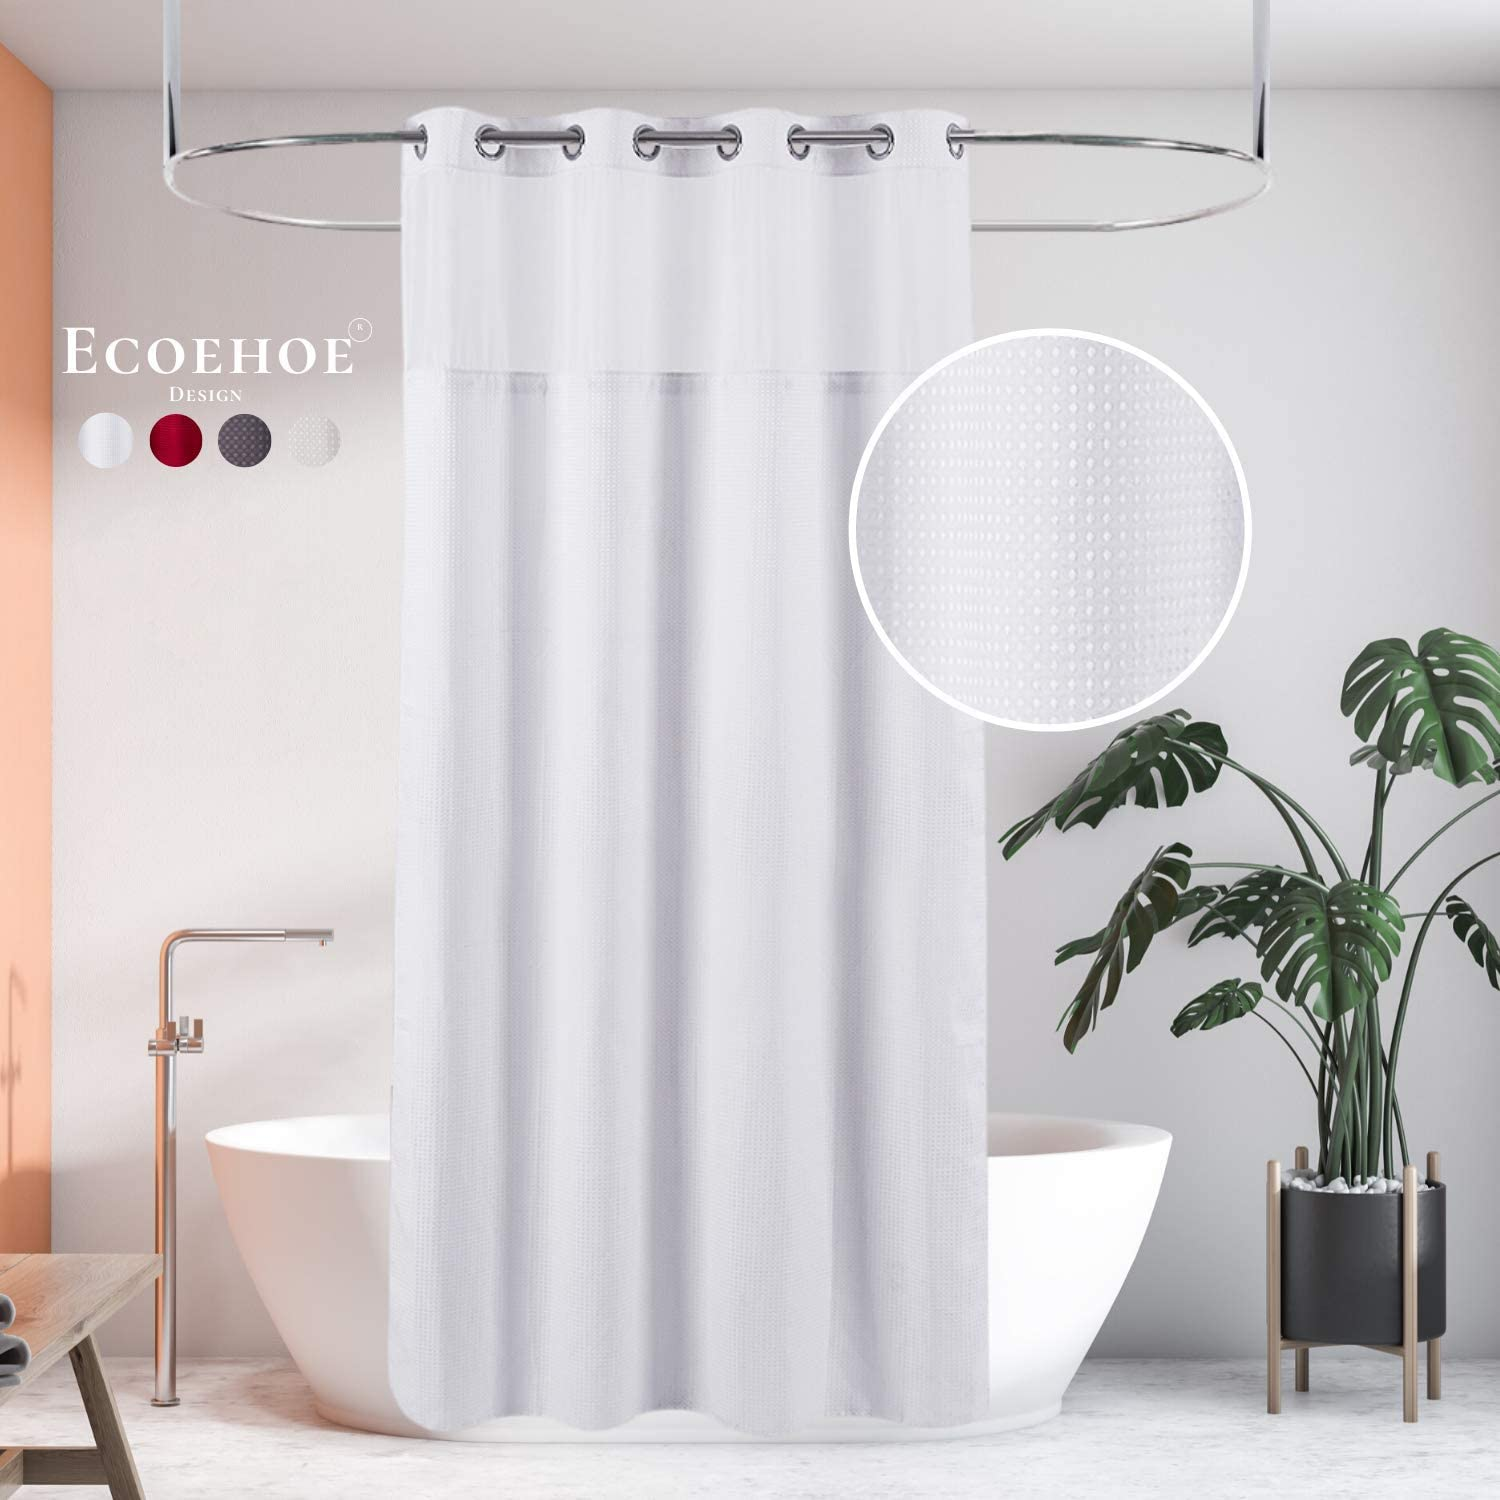 Amazon Com Ecoehoe Hotel Grade Waffle Fabric Hook Free Shower Curtain With Removable Polyester Liner Top See Through 71 W X 79 H Home Kitchen